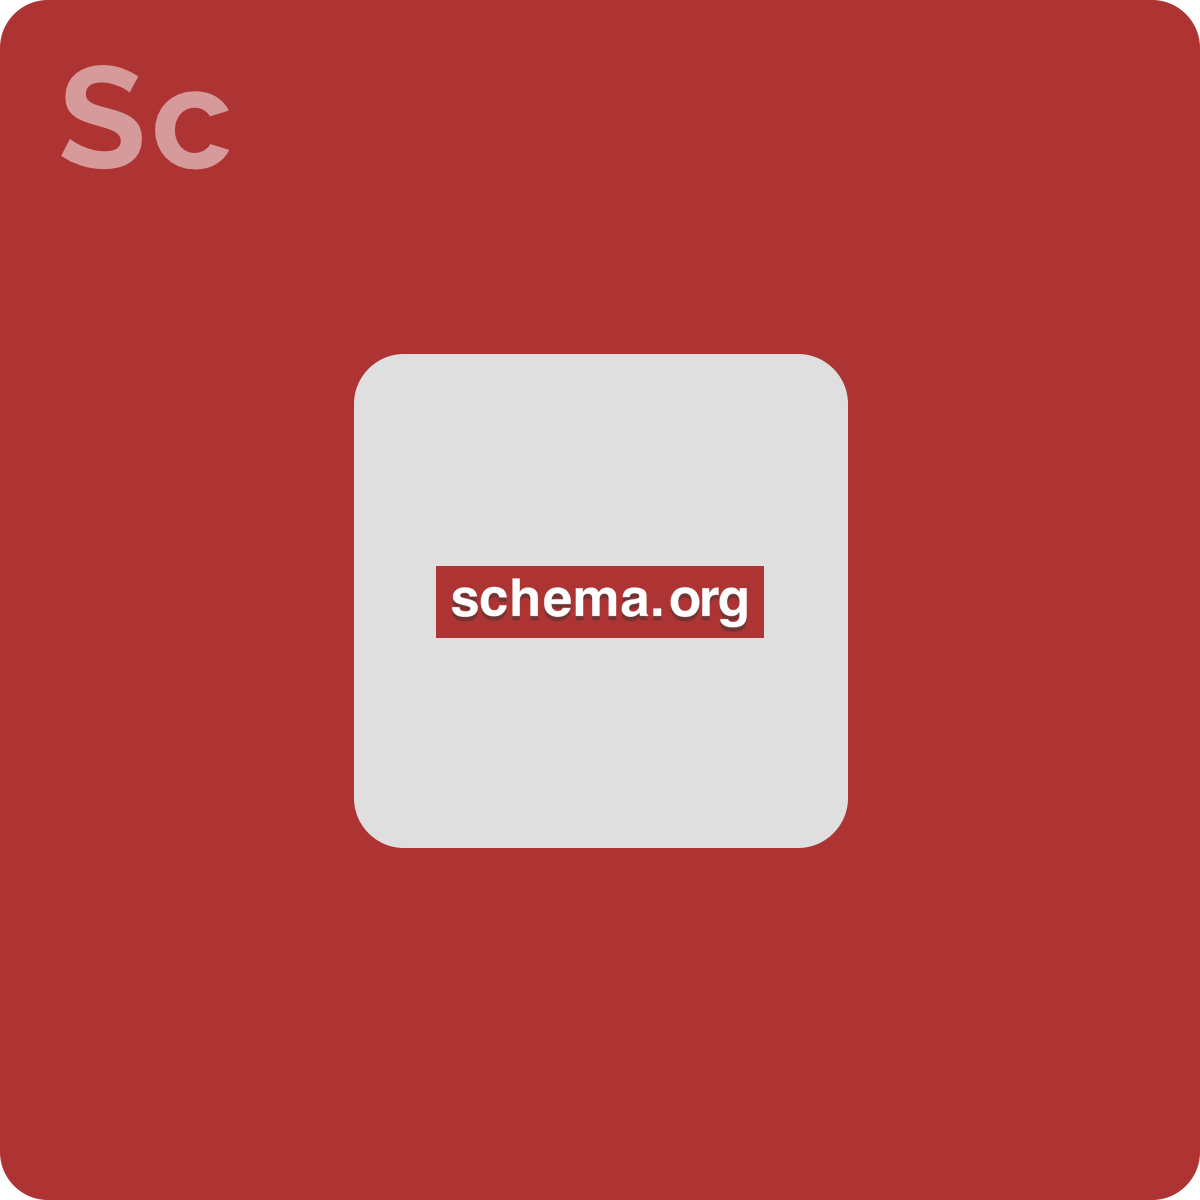 We can help improve your SEO by including the necessary code according to schema.org.